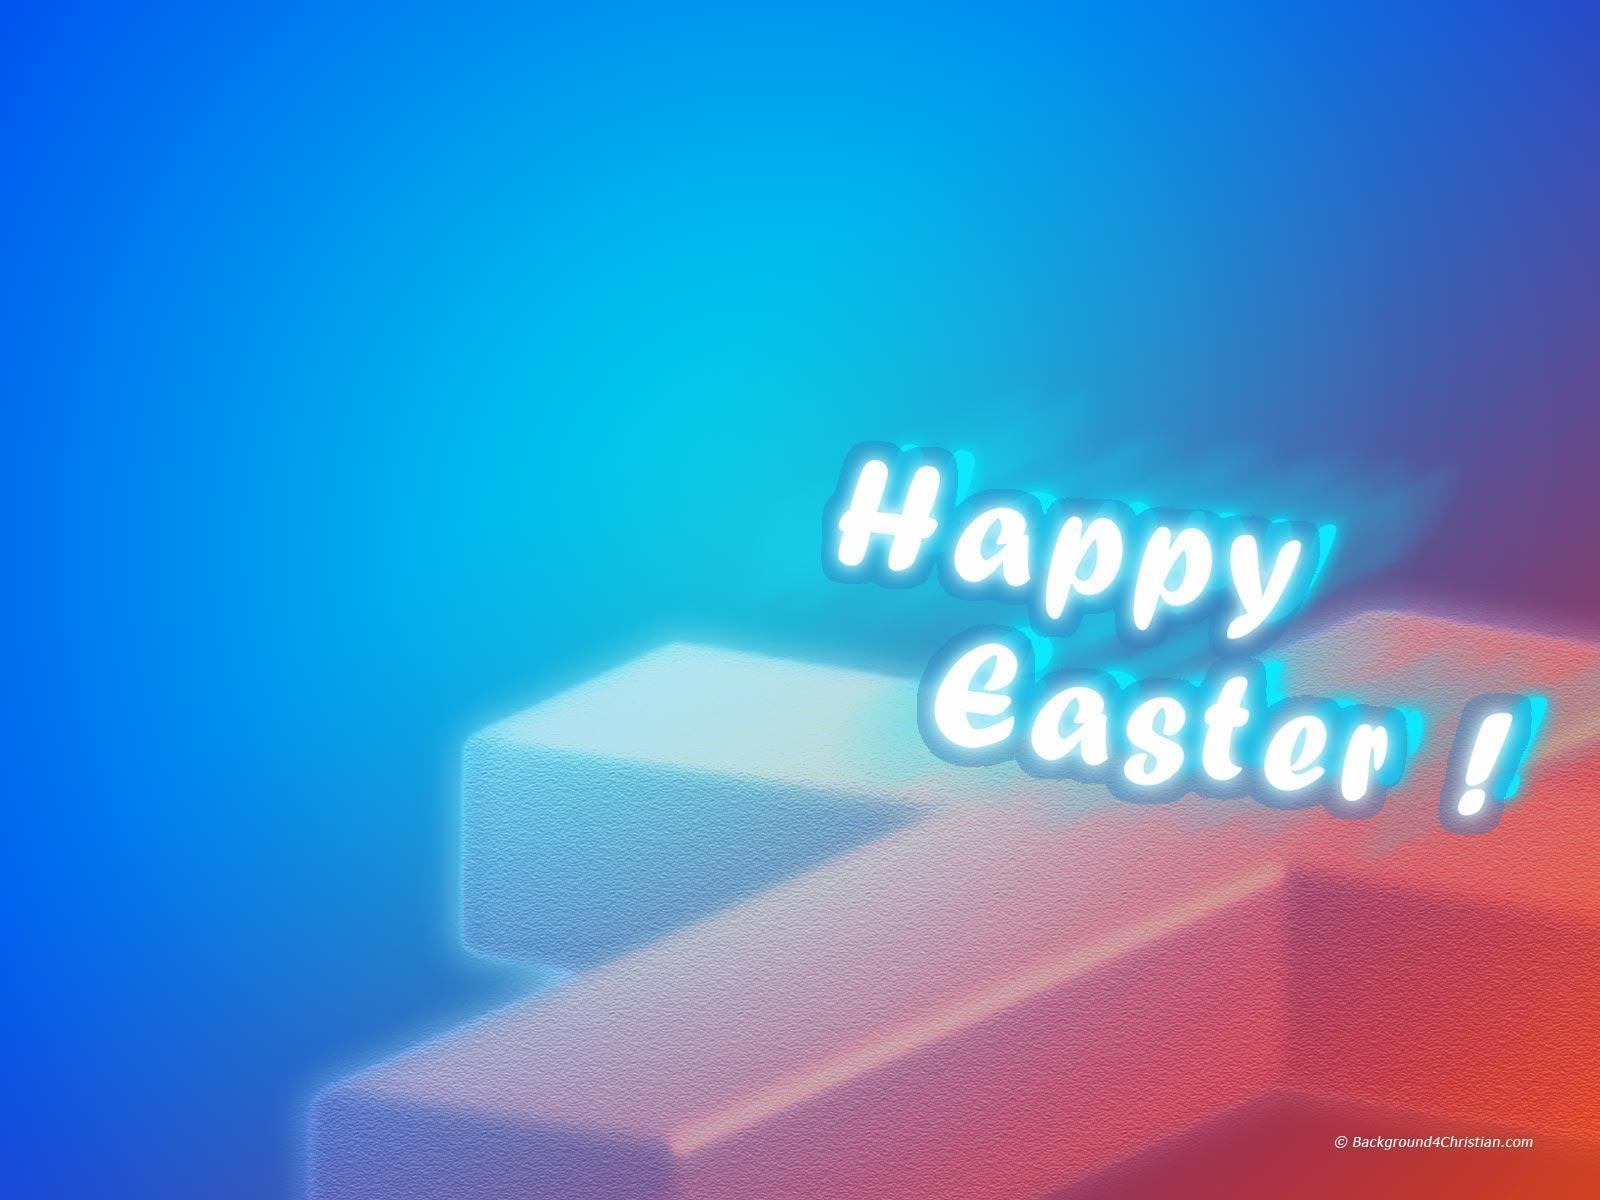 happy easter wallpaper christian - photo #26